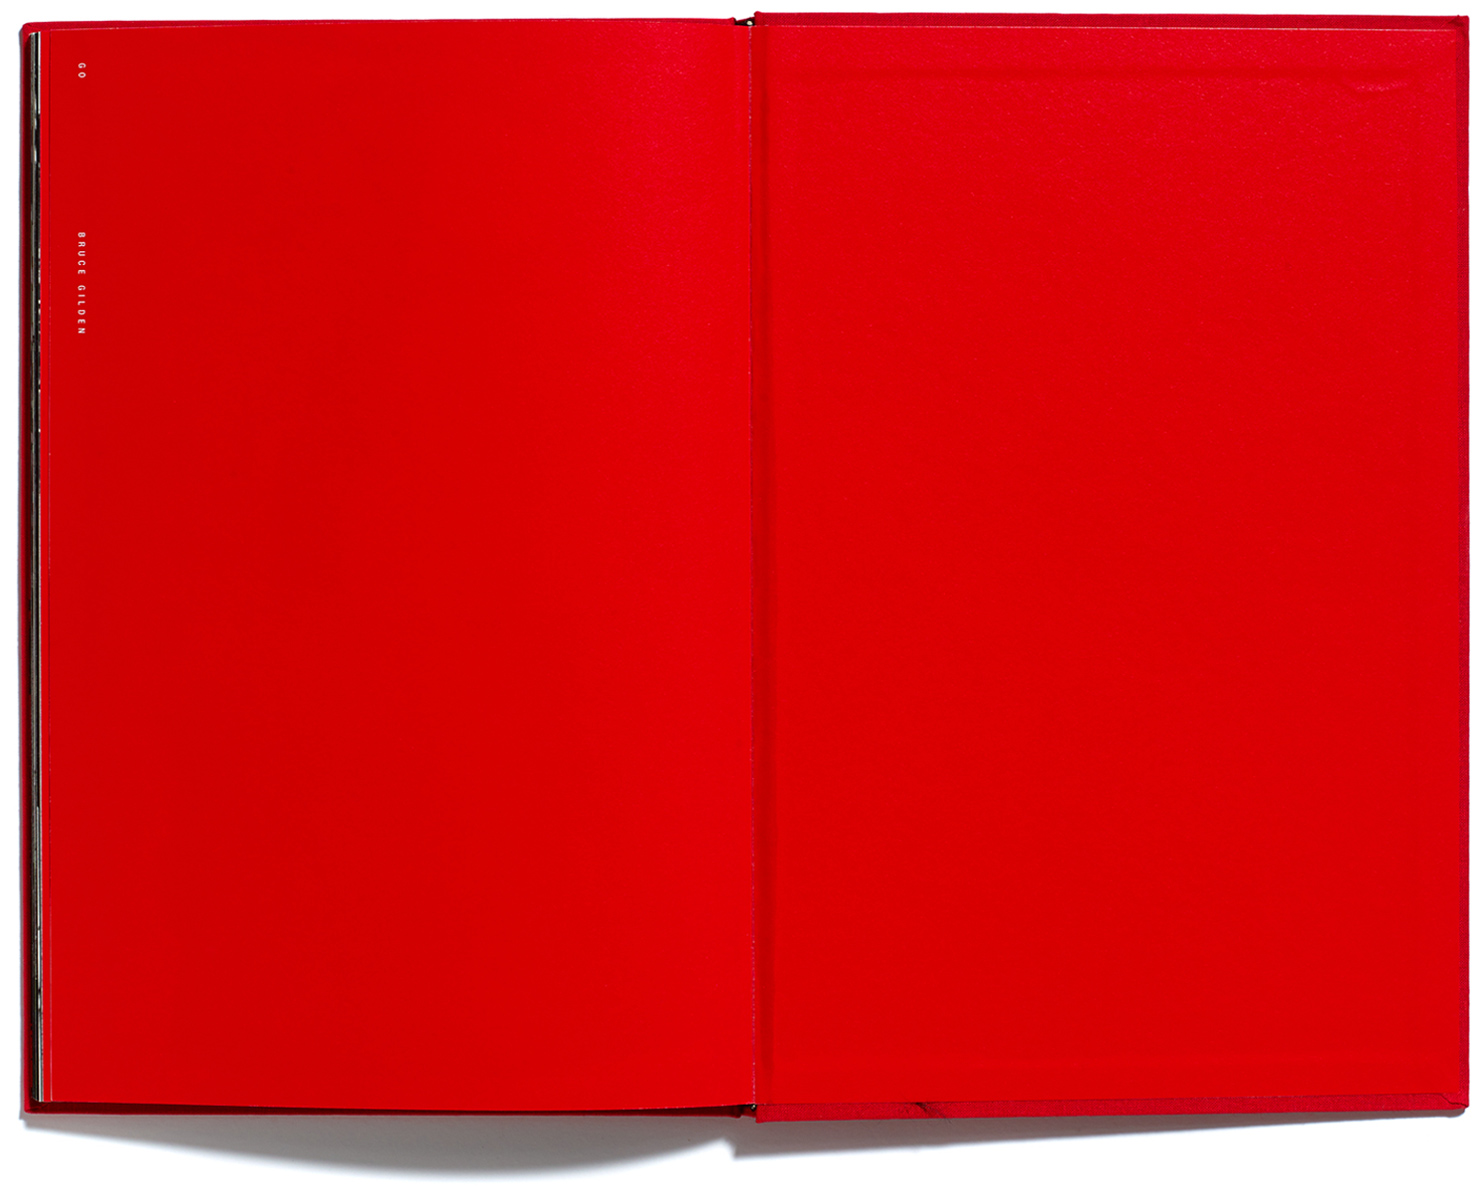 Browns Editions, Browns Editions Publishing, Browns Editions Books, Browns Editions Bruce Gilden, Browns Editions Go, Browns Editions Bruce Gilden Go